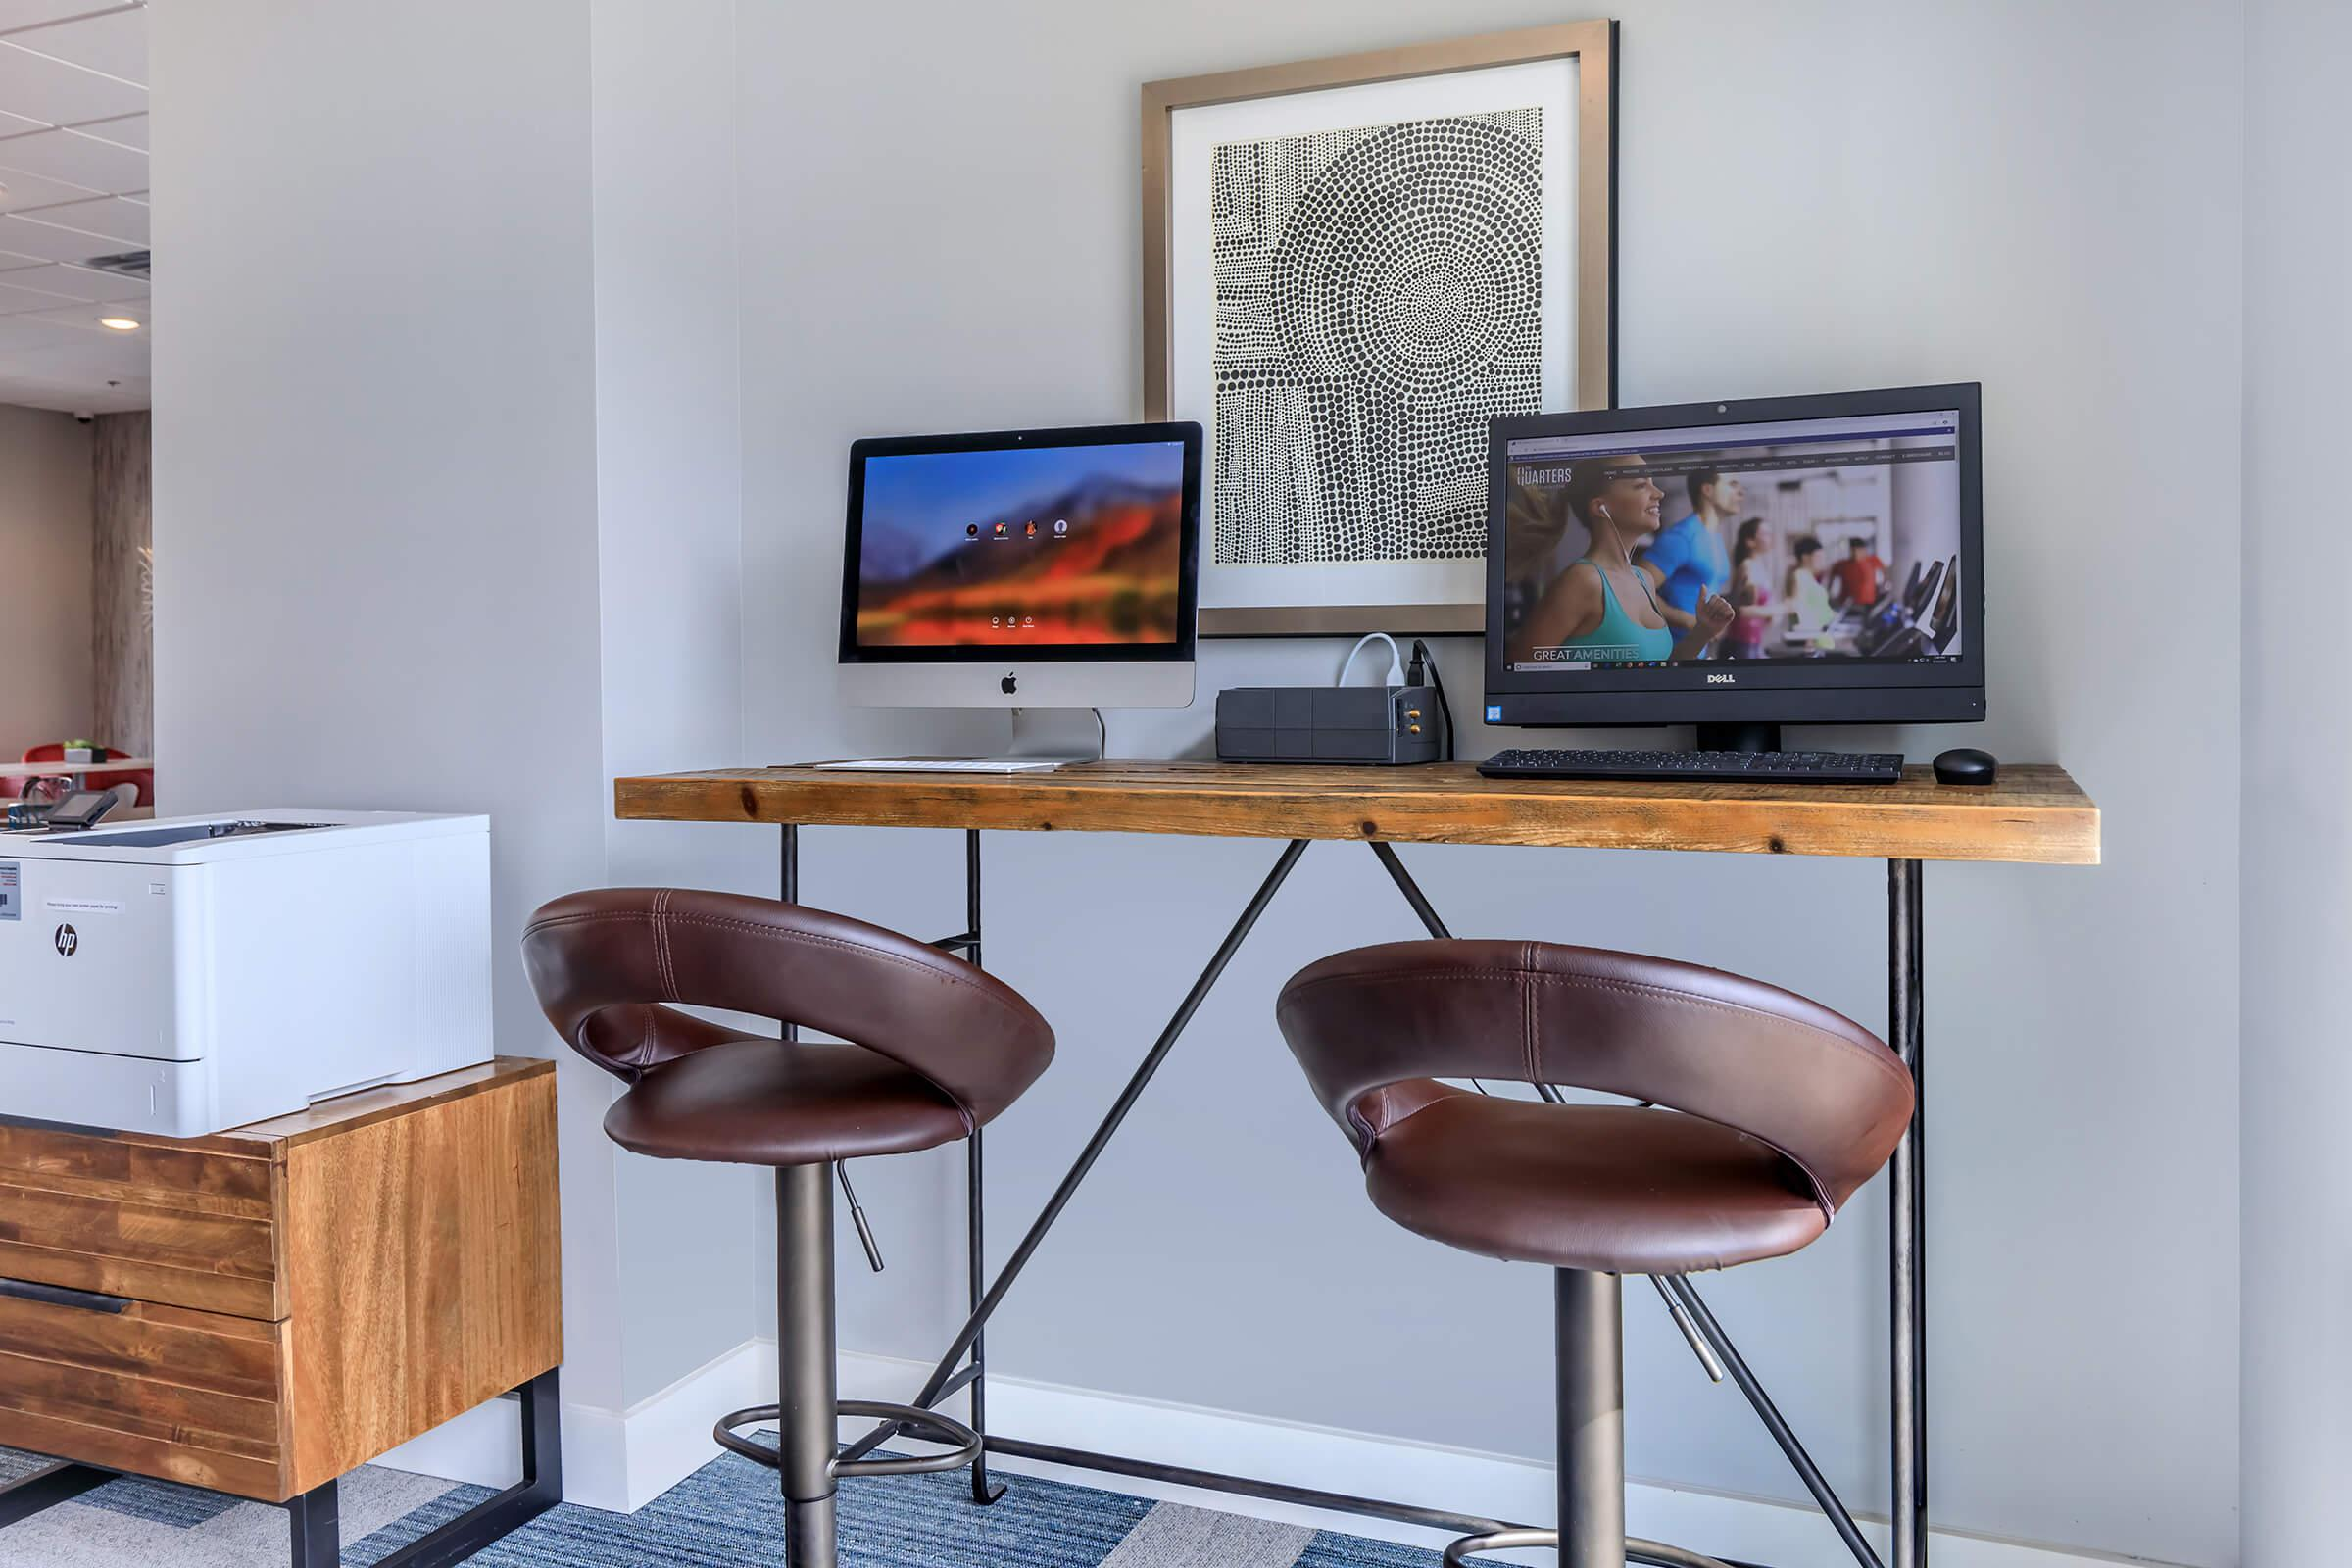 a desk with a computer and a chair in a room